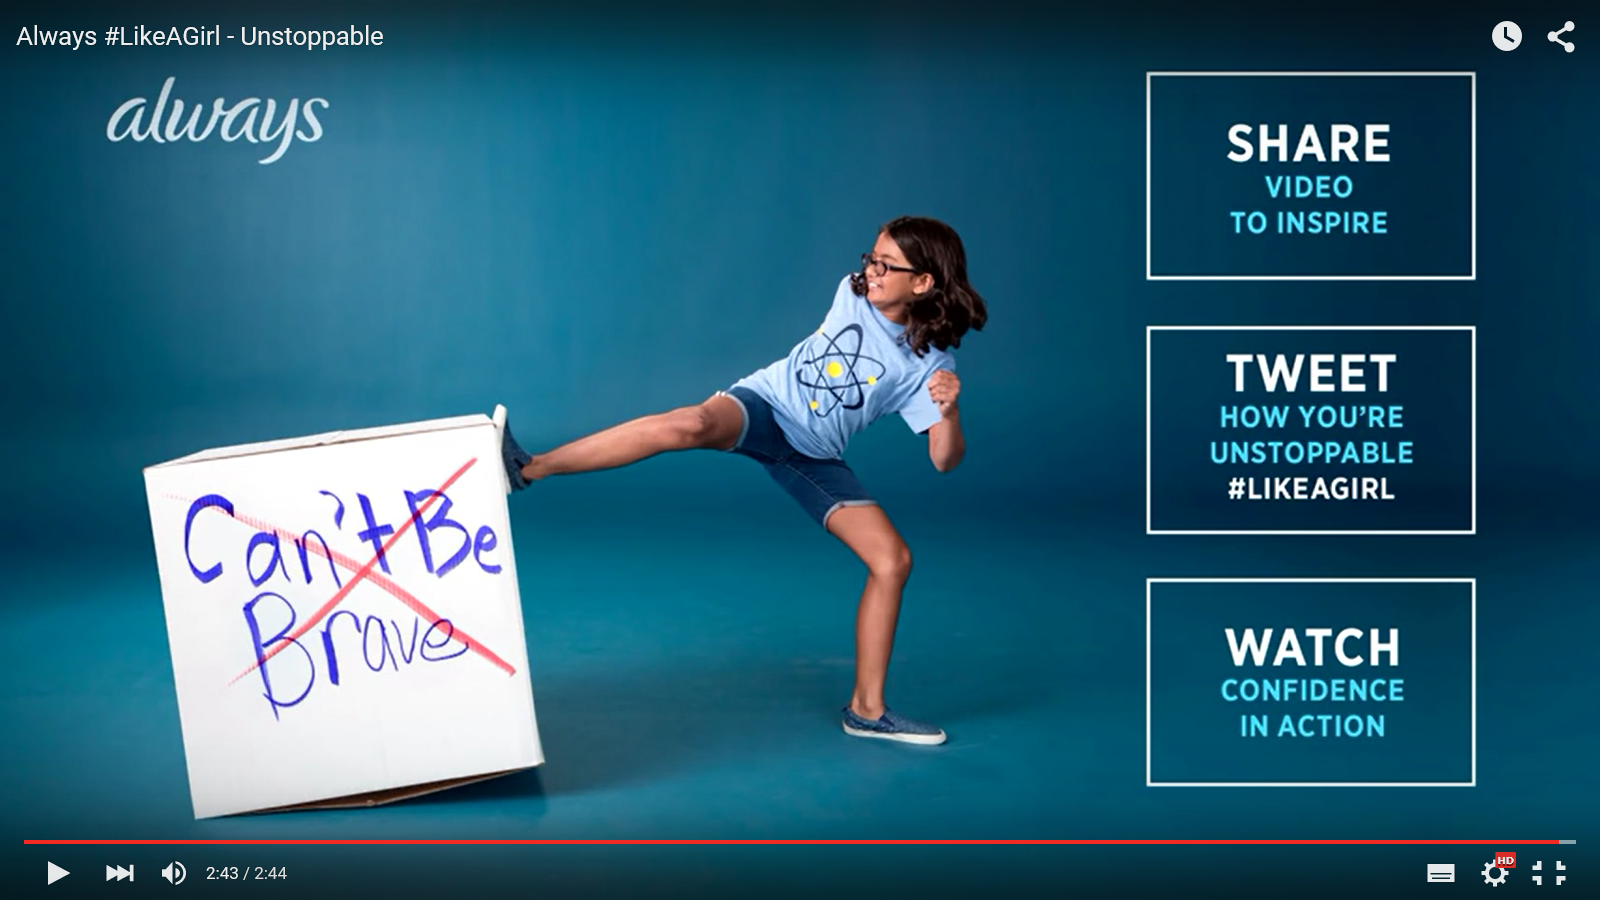 Always #LikeAGirl Unstoppable advert